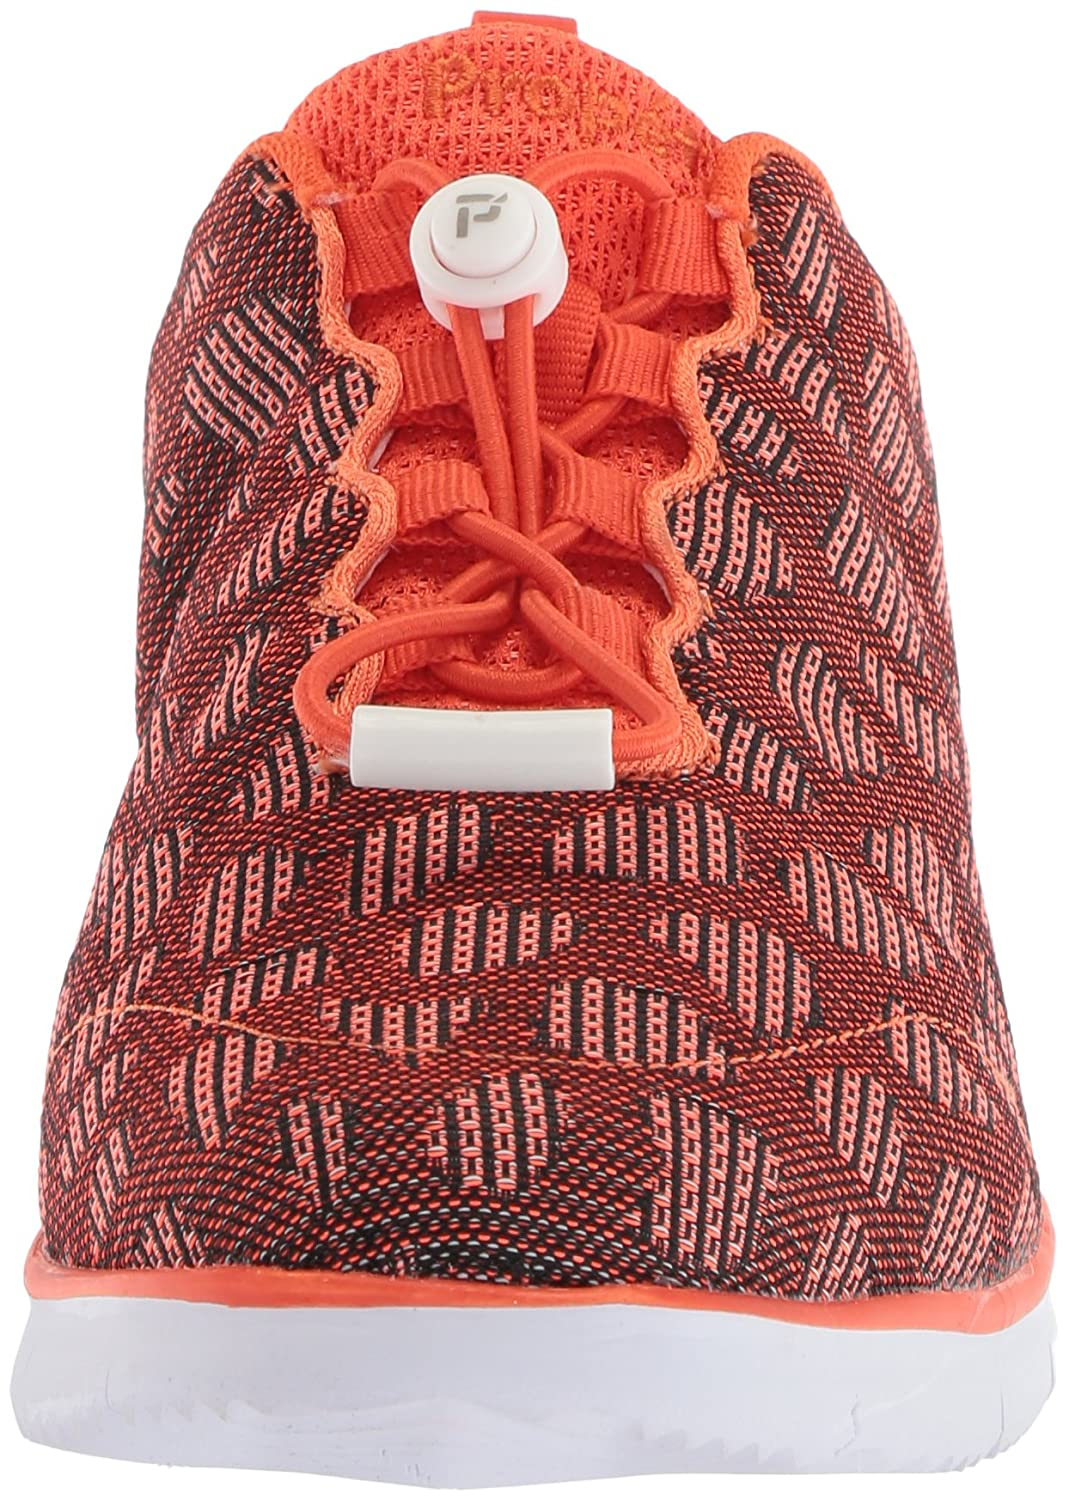 Propét Women's TravelFit Walking Shoe B073DKYV8W 6 4E US|Orange